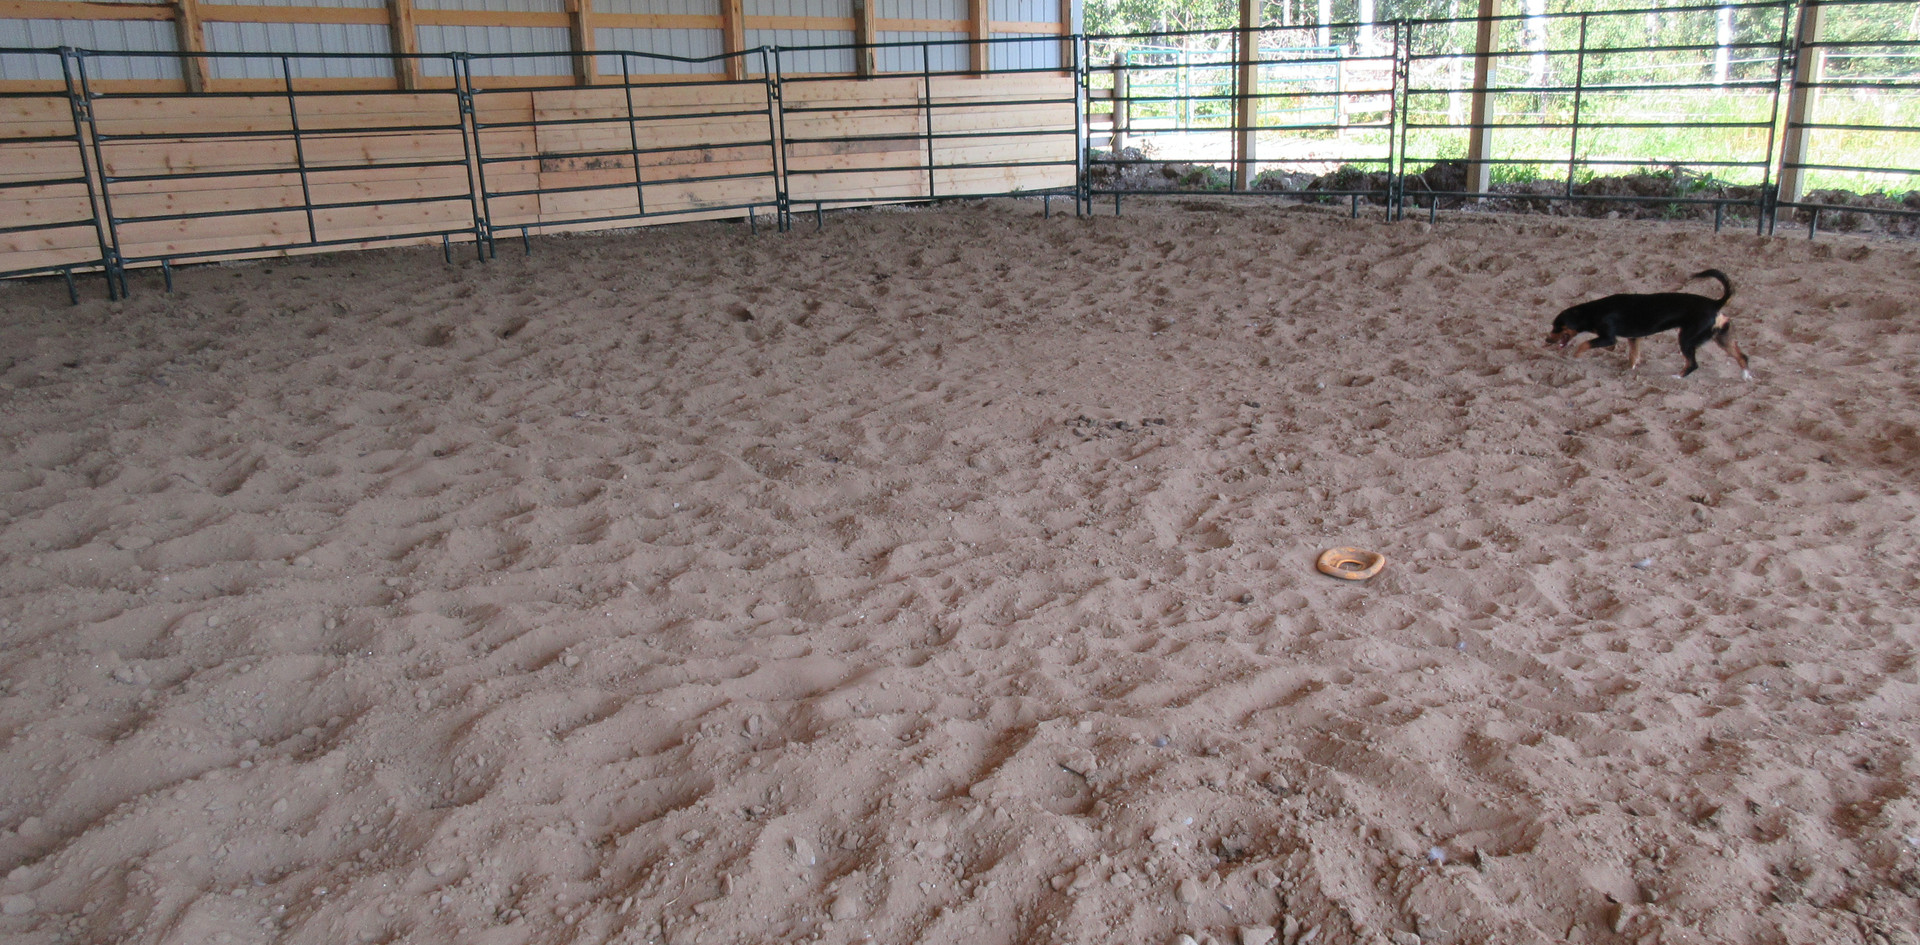 Round pen footing